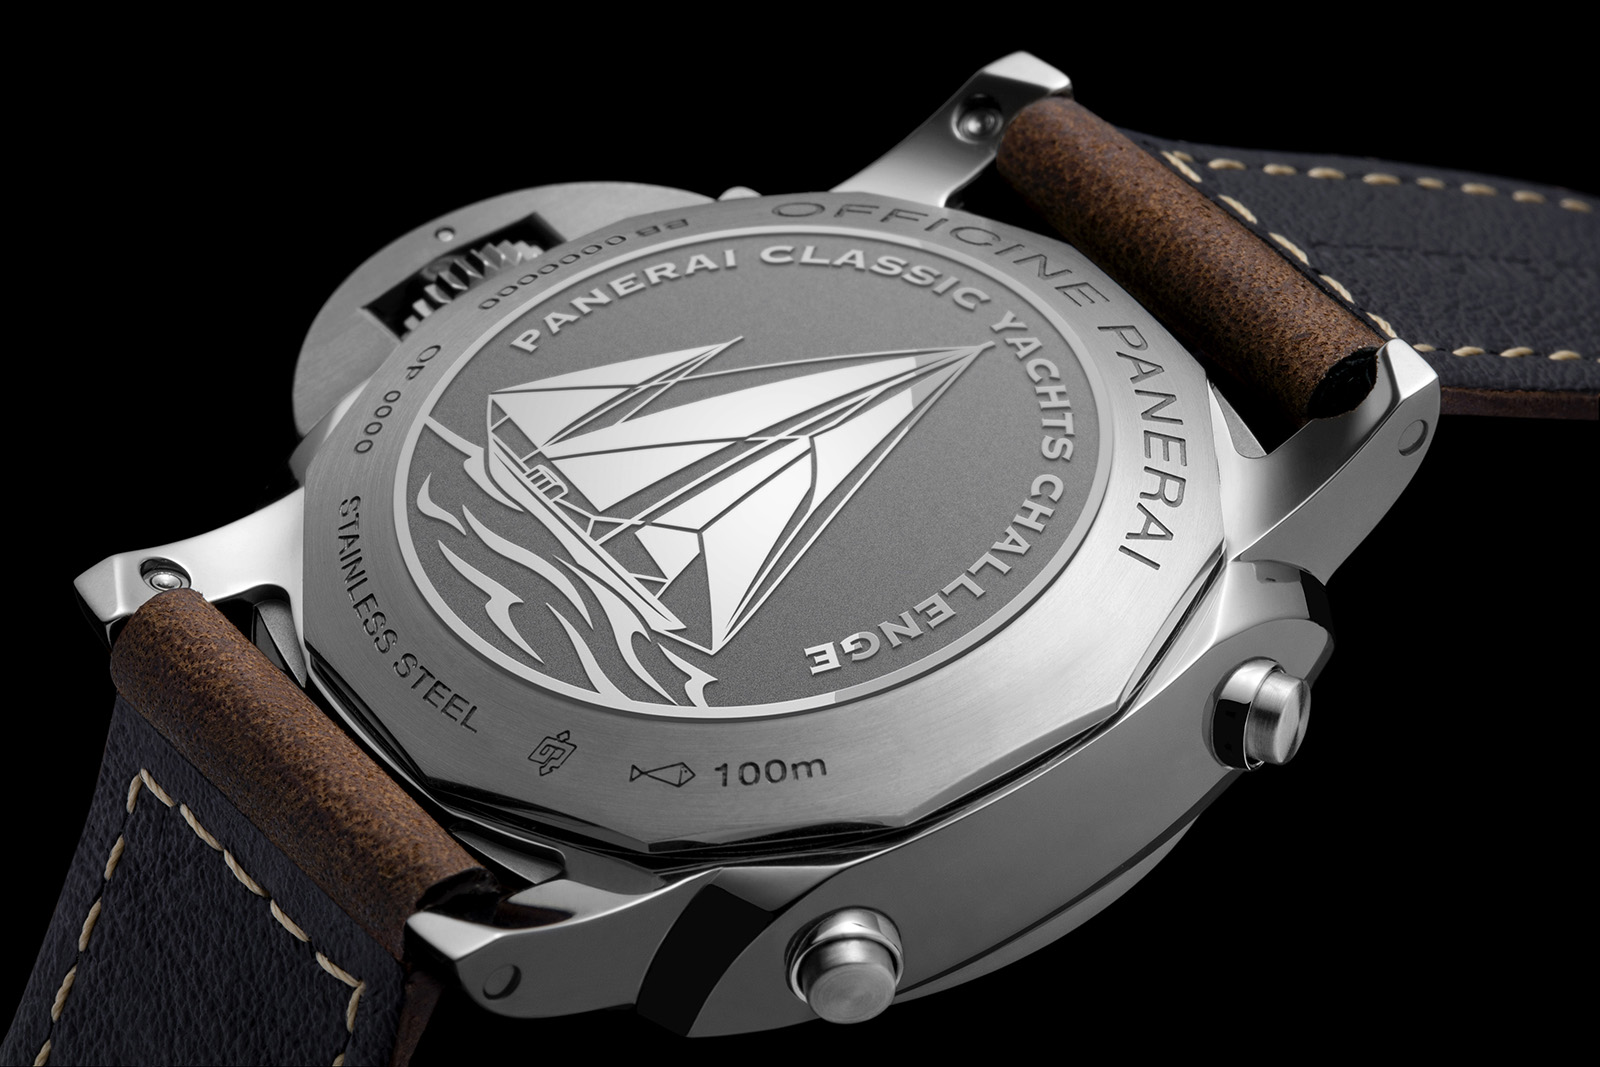 Panerai Luminor 1950 PCYC 3 Days Chrono Flyback Automatic Pam654